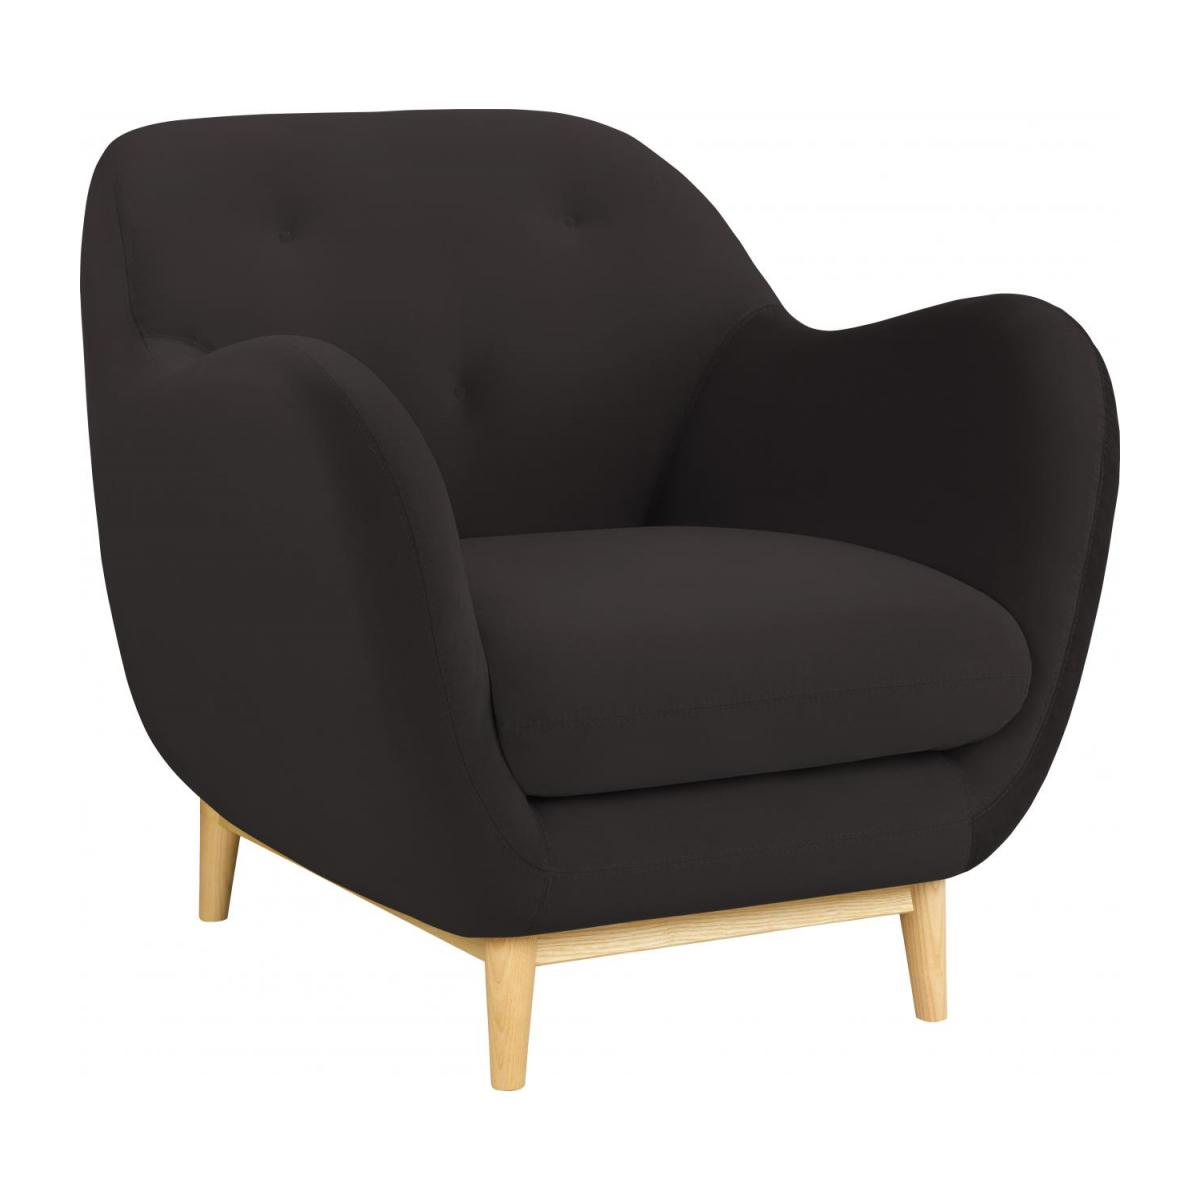 Armchair made of velvet, grey n°1